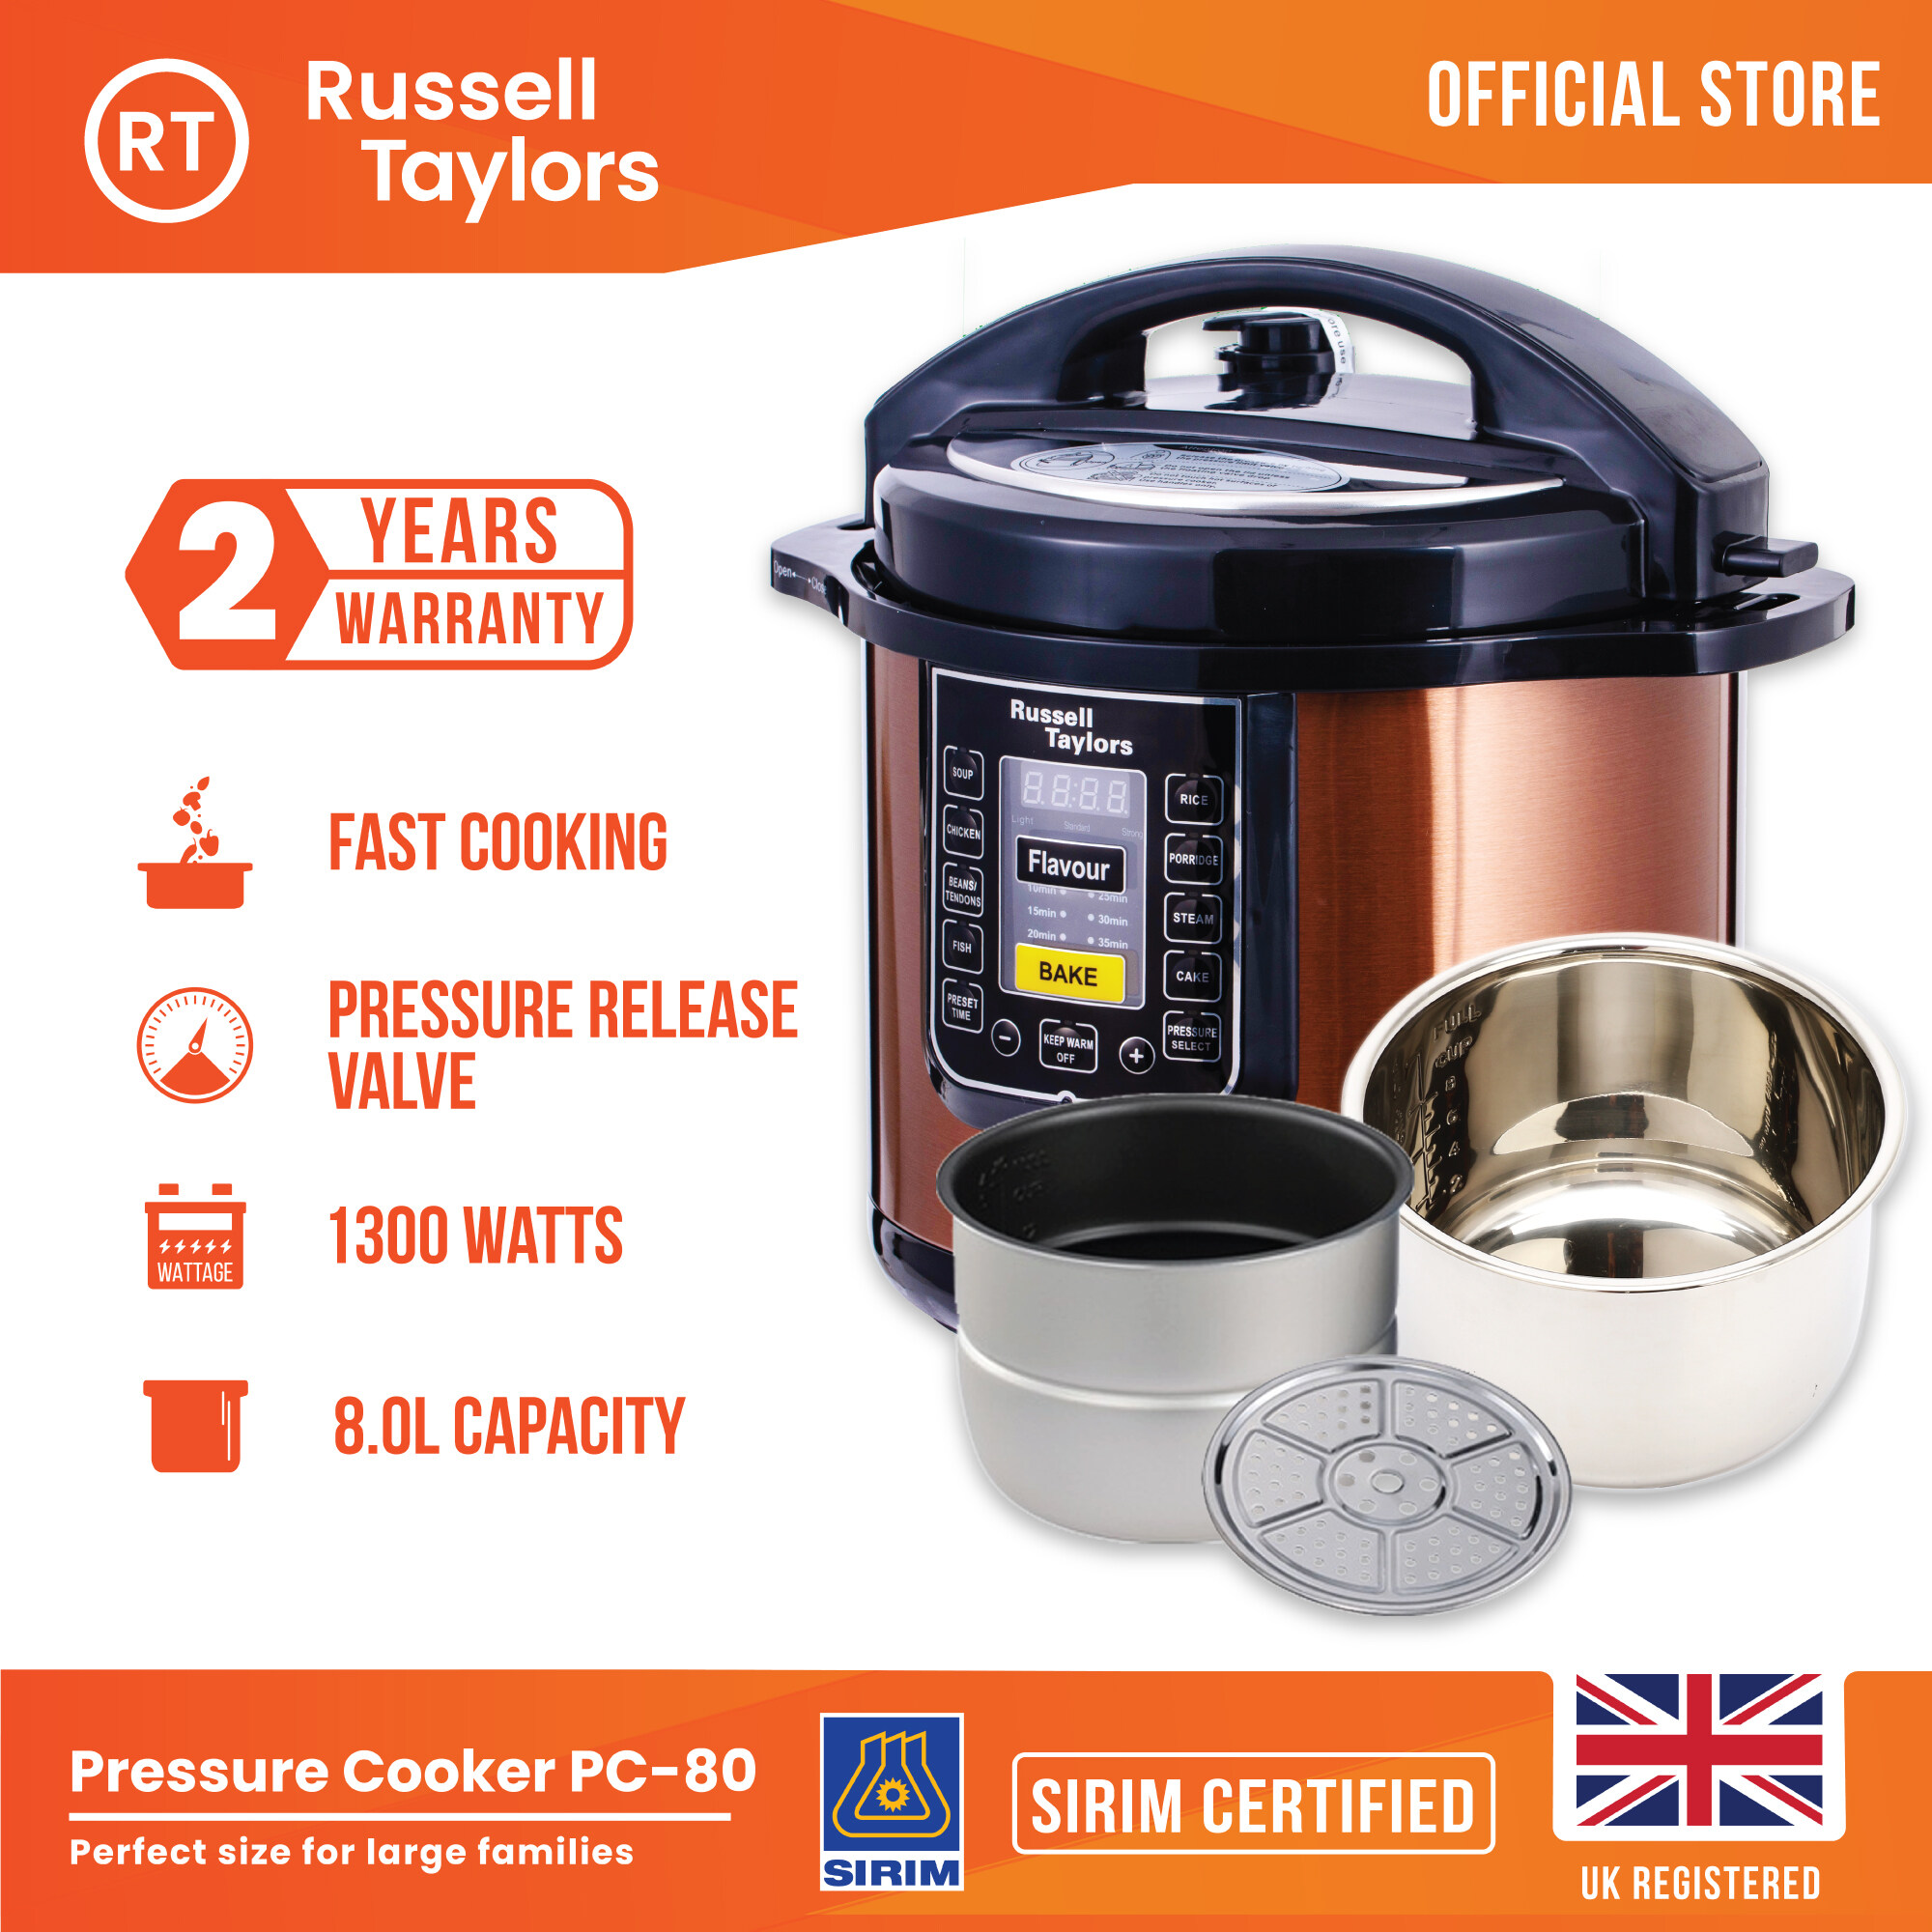 Russell Taylors 8L Dual Pot Pressure Cooker PC-80 (2 inner pots + 1 steam rack) Electric Rice Cooker Multi Cooker